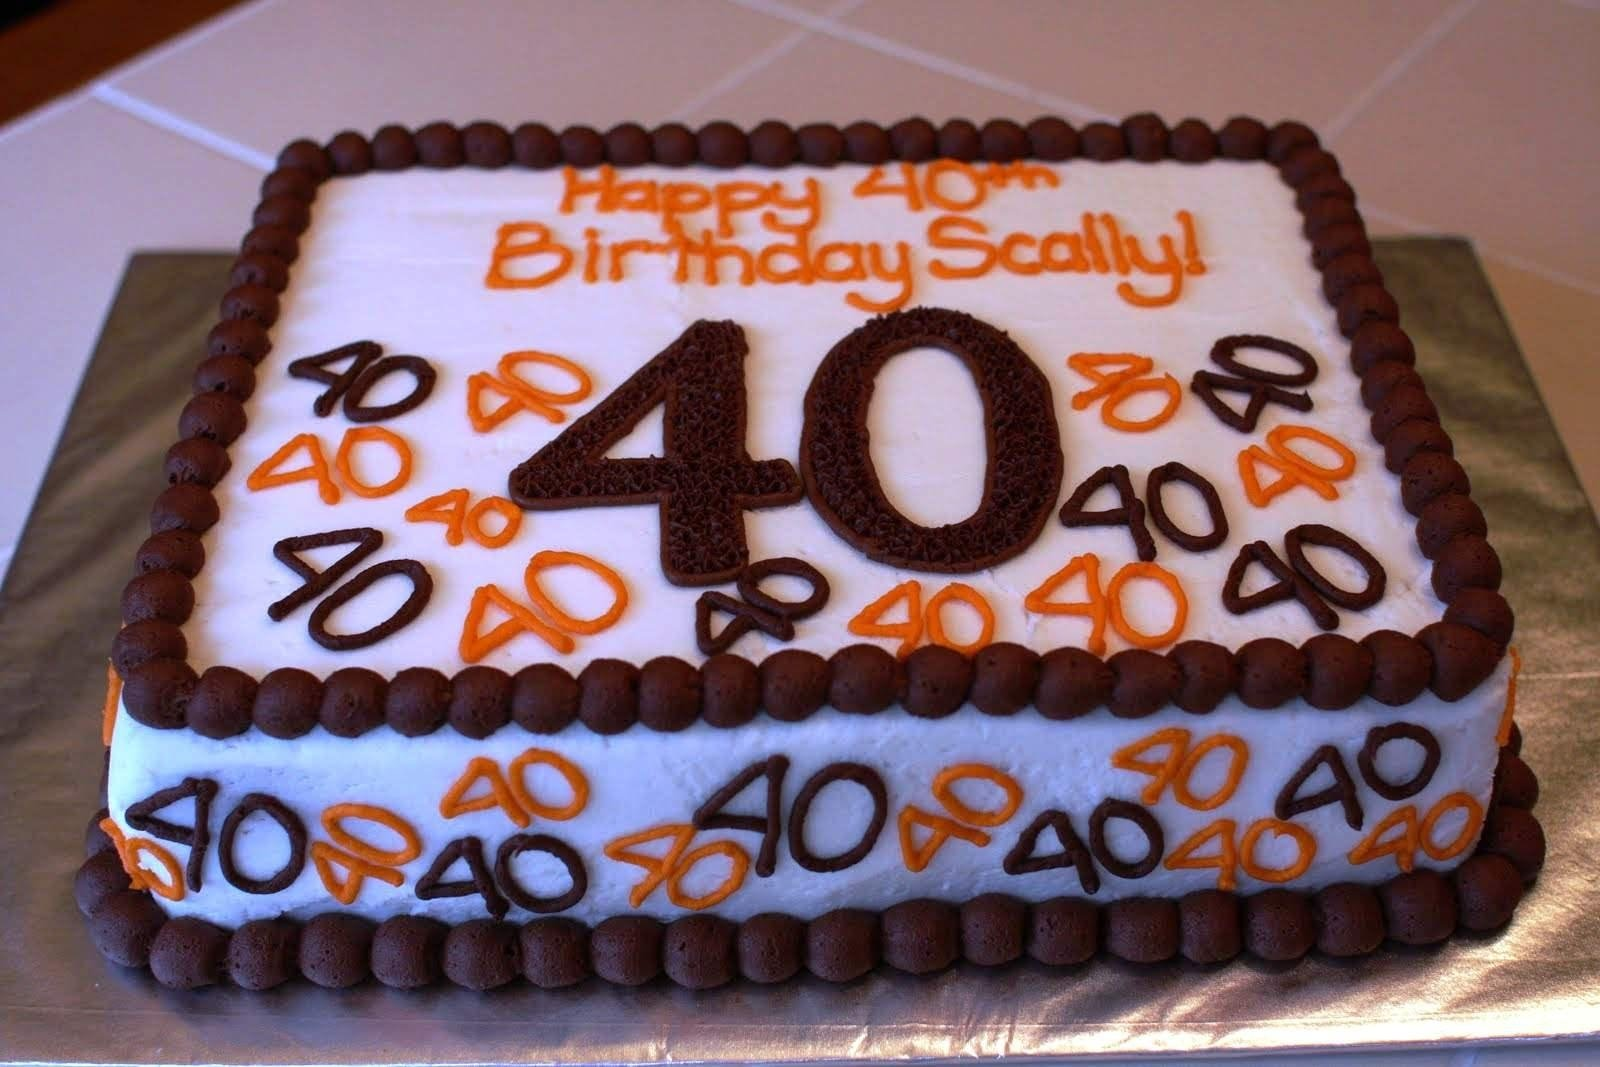 10 Nice Birthday Cake Ideas For Men 40th Protoblogr Design